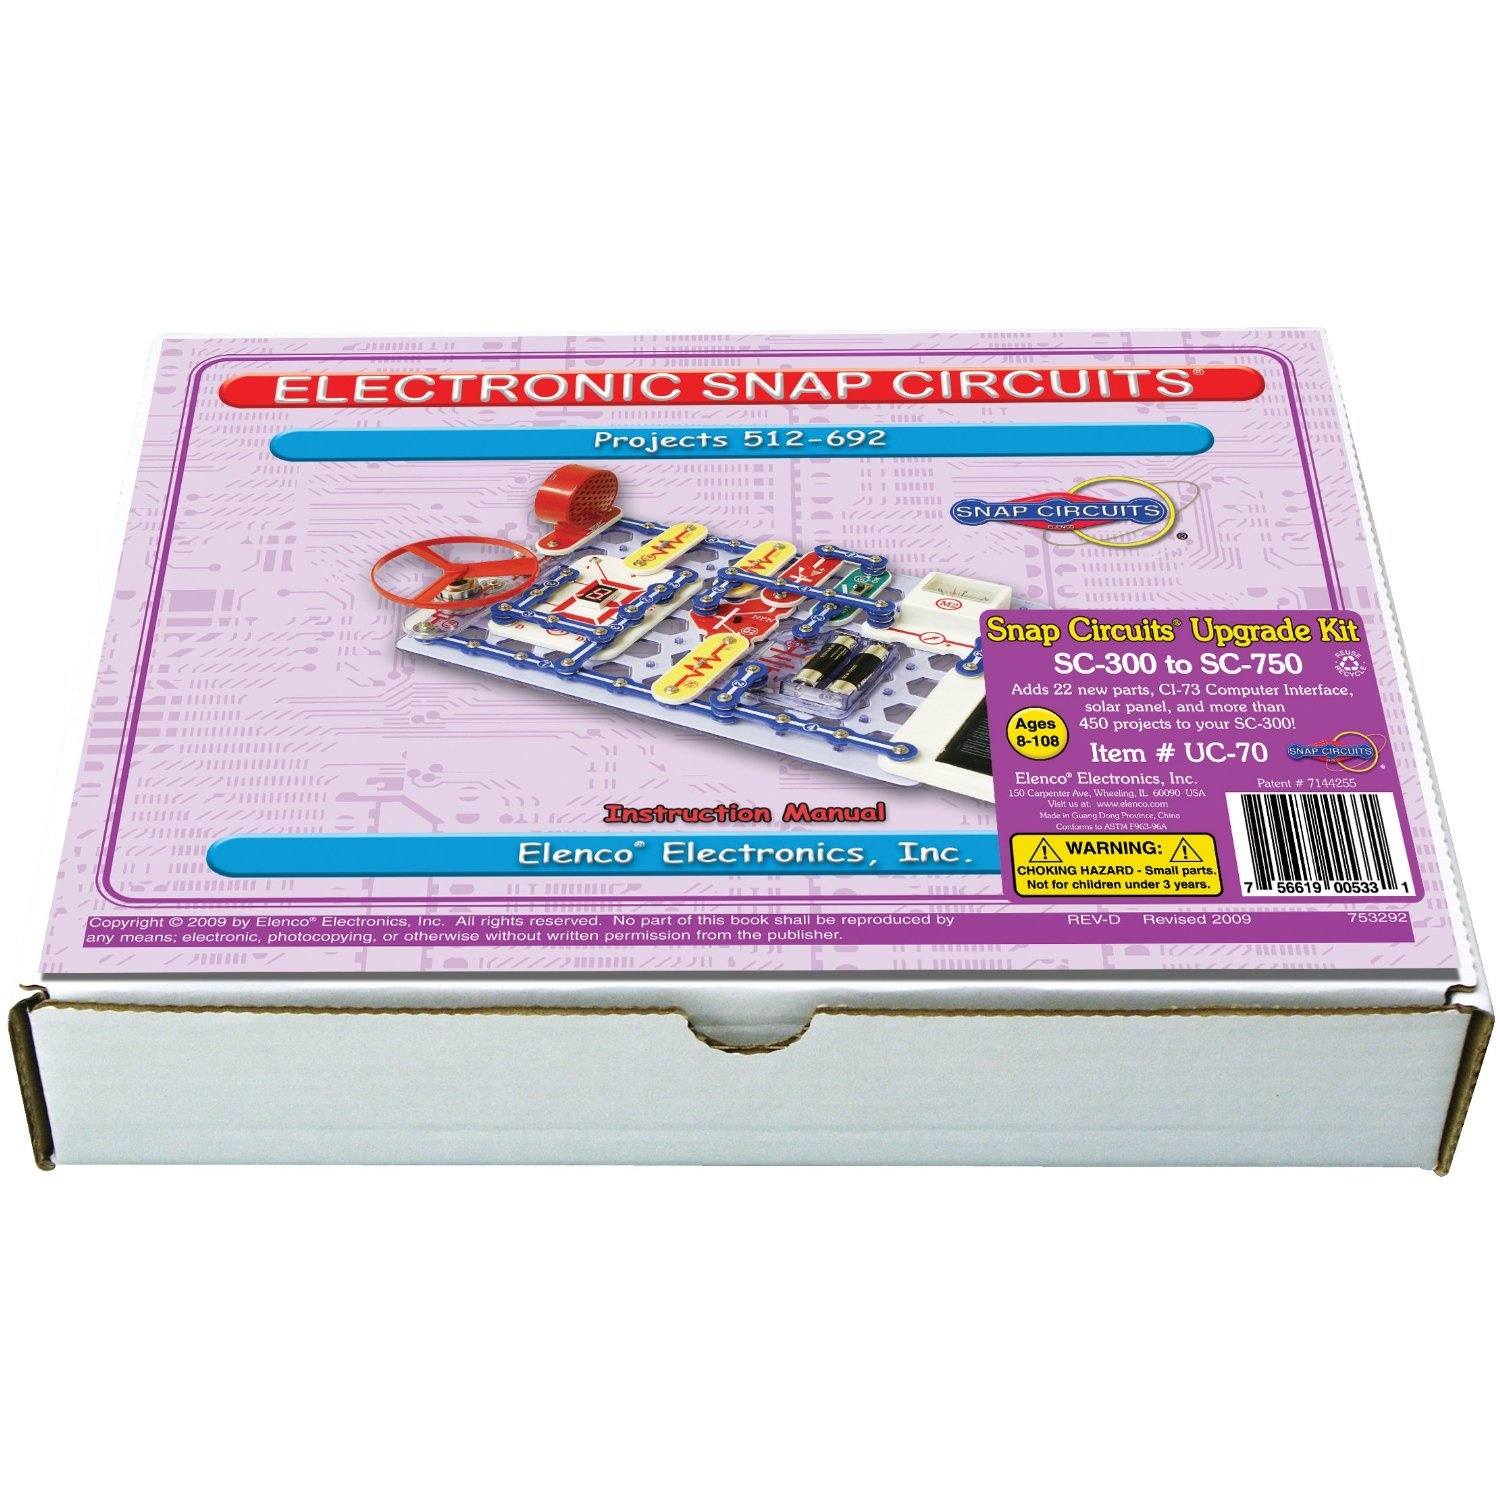 Snap Circuits Toys Buy Online From Pro 500in1 Sc500 S With Computer Inteface